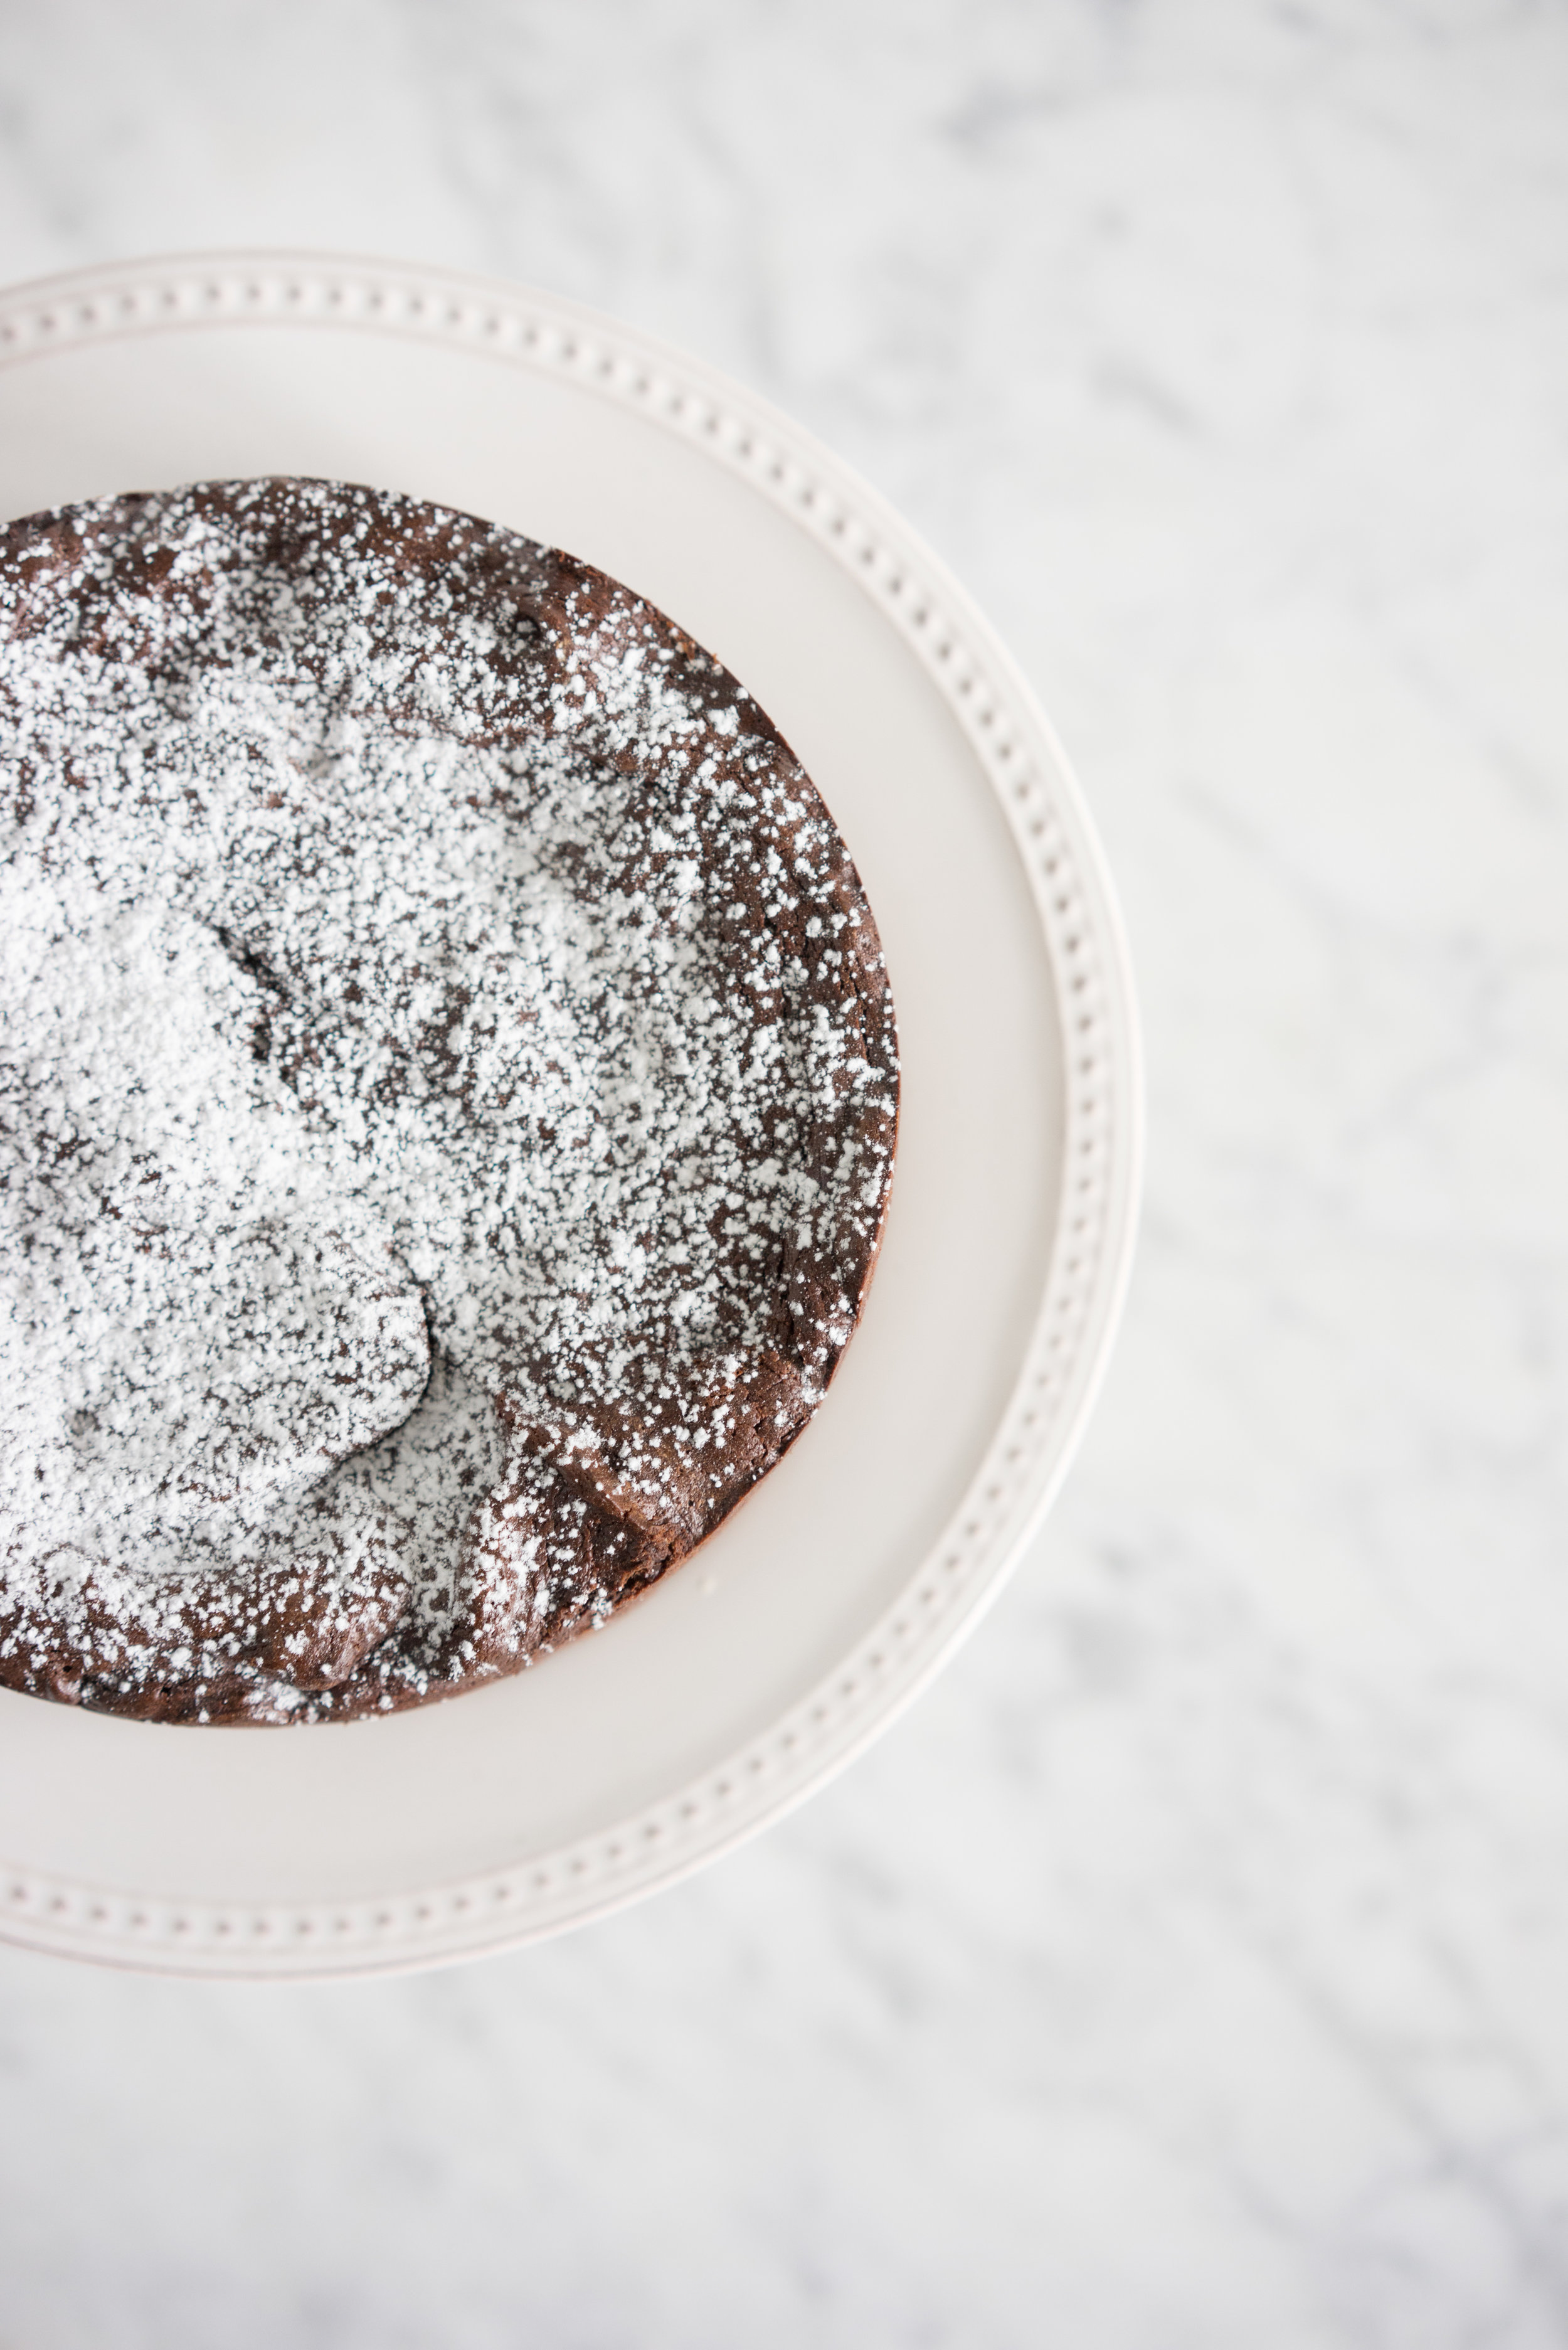 Flourless chocolate cake - dense and rich, with a huge chocolate hit